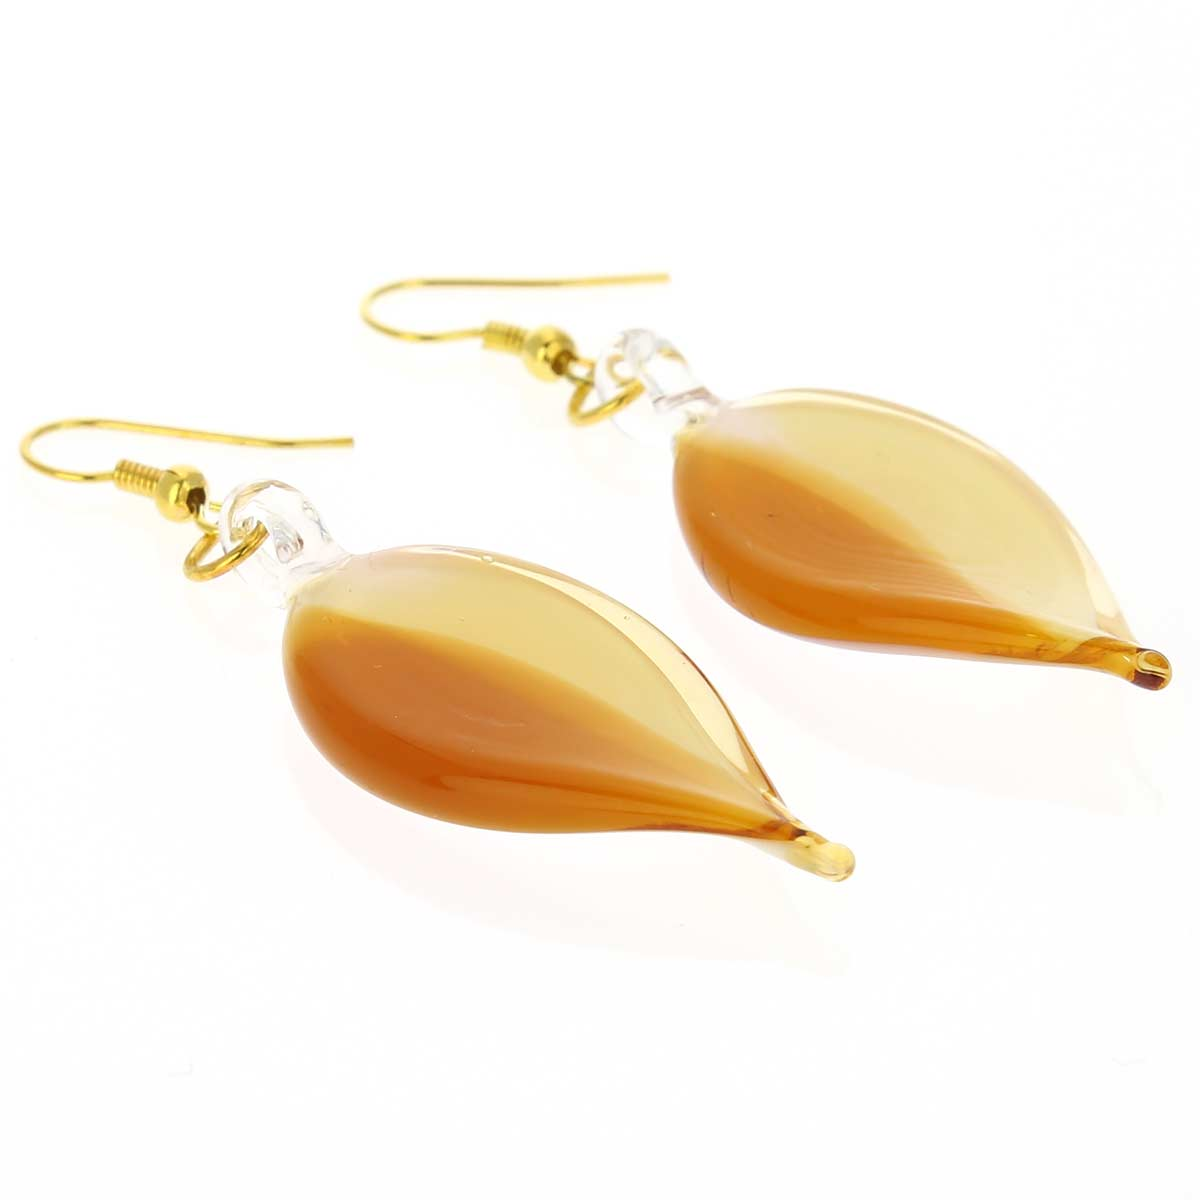 Milk and Honey leaf-shaped curved earrings